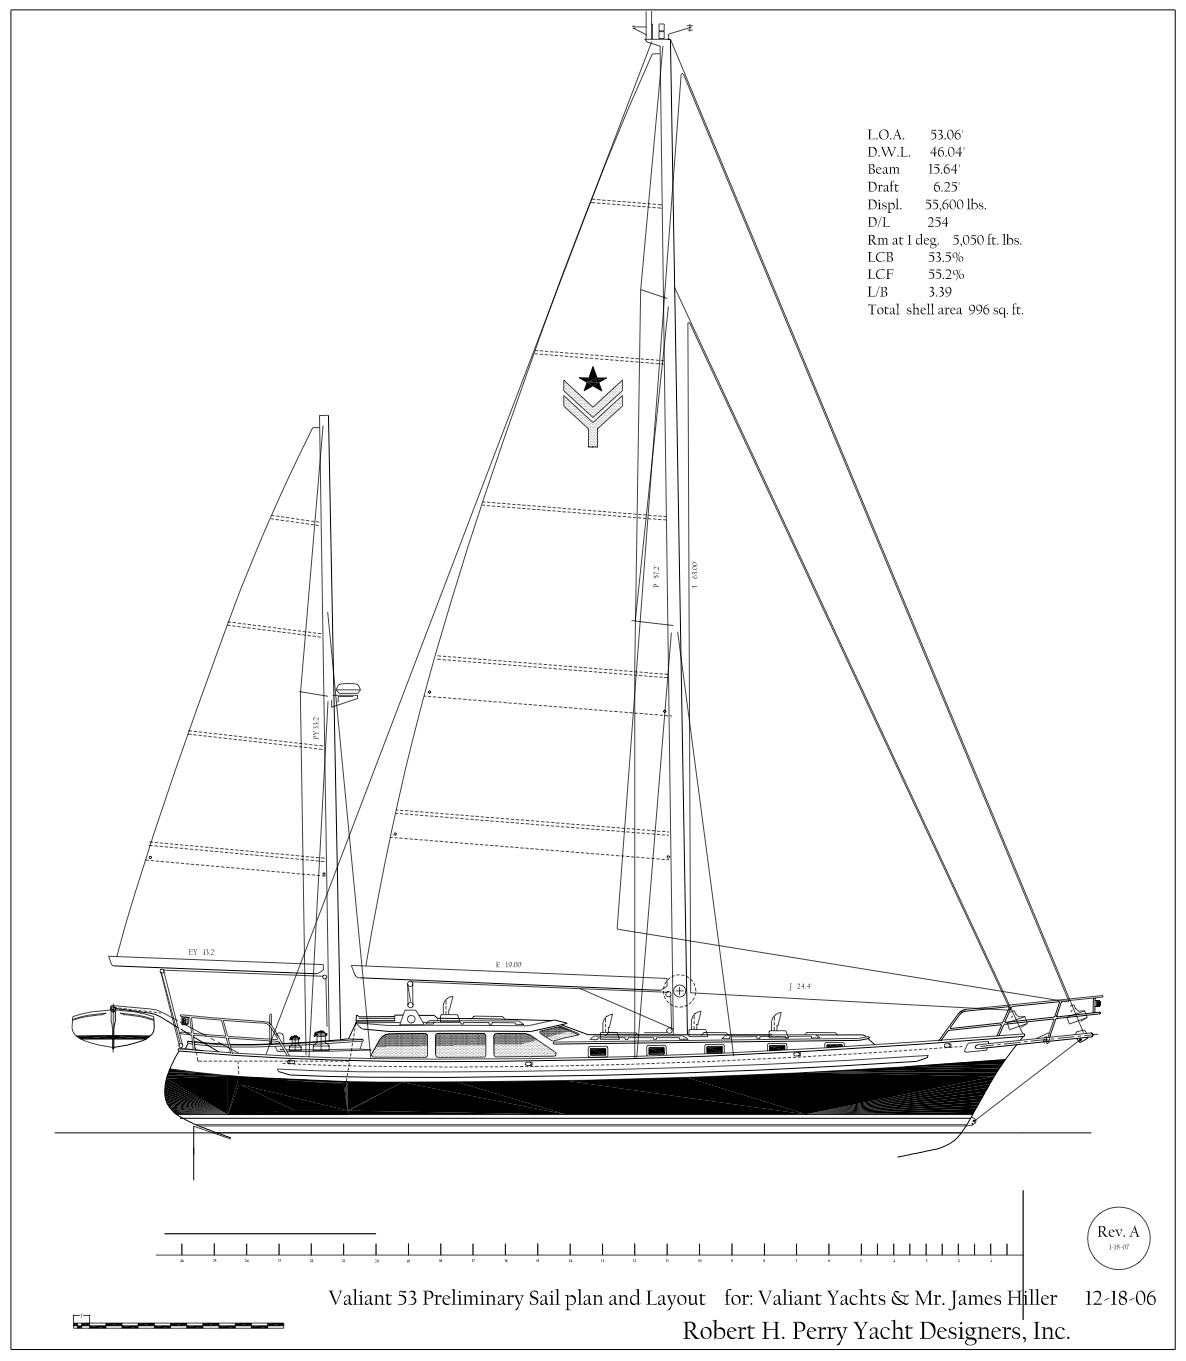 robert h perry yacht designers inc drawings amp plans